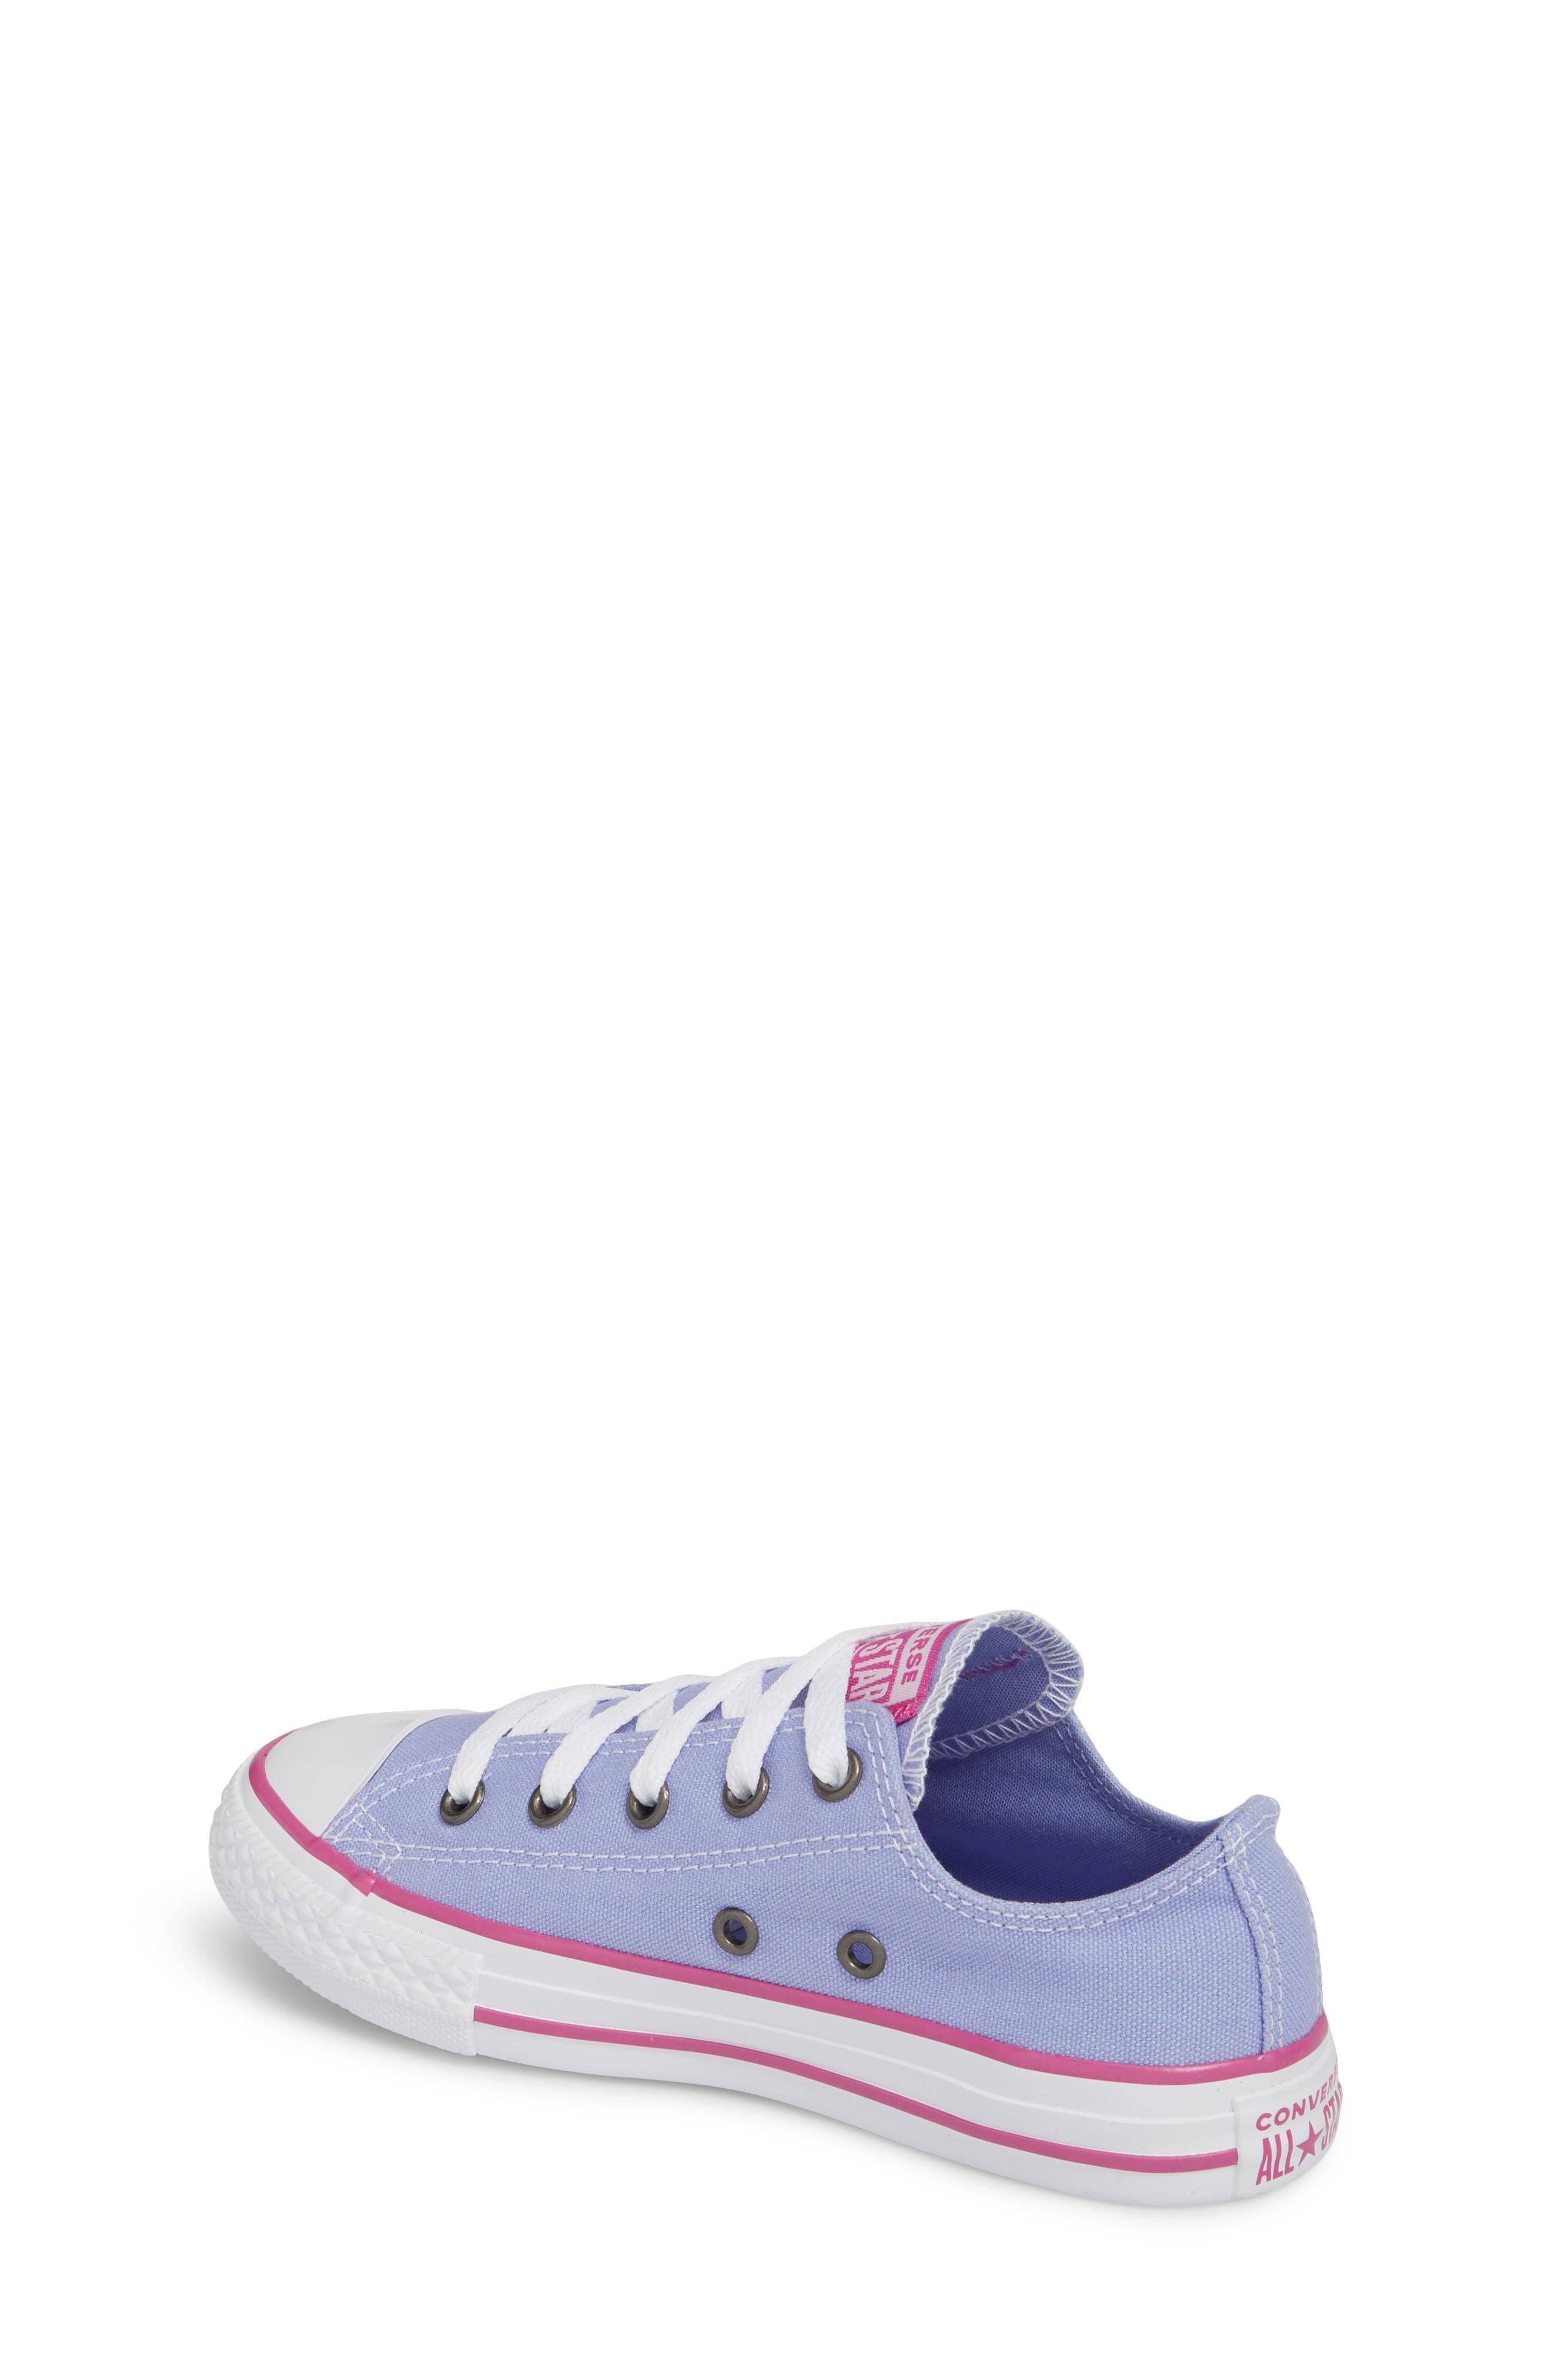 All Star<sup>®</sup> Low Top Sneaker,                             Alternate thumbnail 2, color,                             Twilight Purple